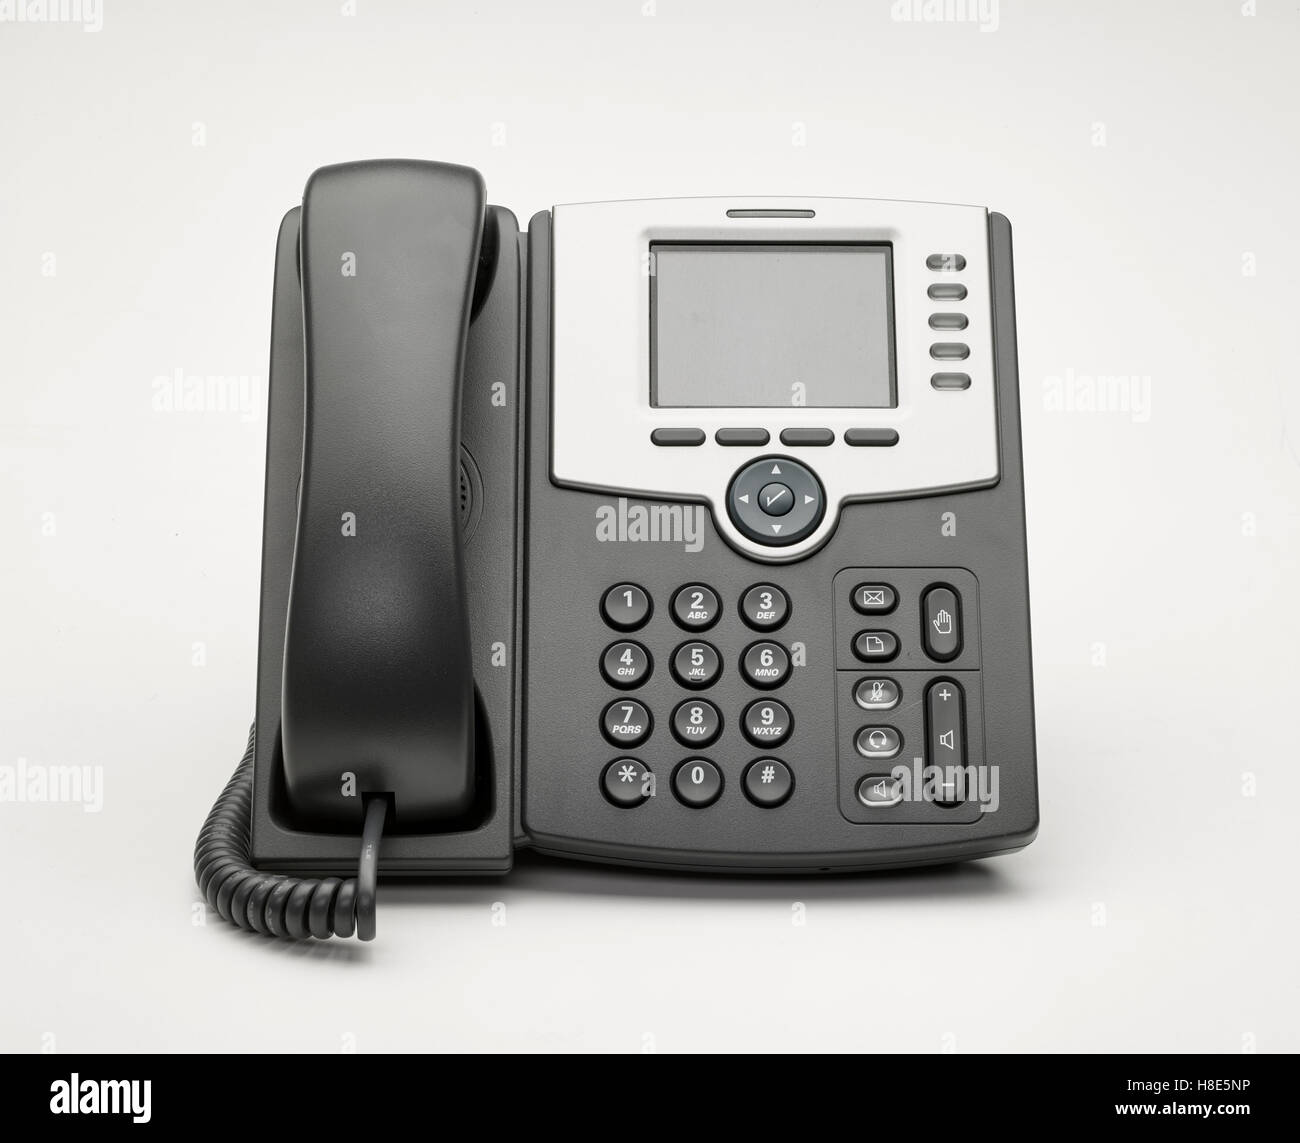 the impact of touch tone telephone on the communication technology industry The impact of technology on physical activity and exercise behaviors is becoming significant however, there are fundamental issues which need to be addressed for harnessing this technology for public health.